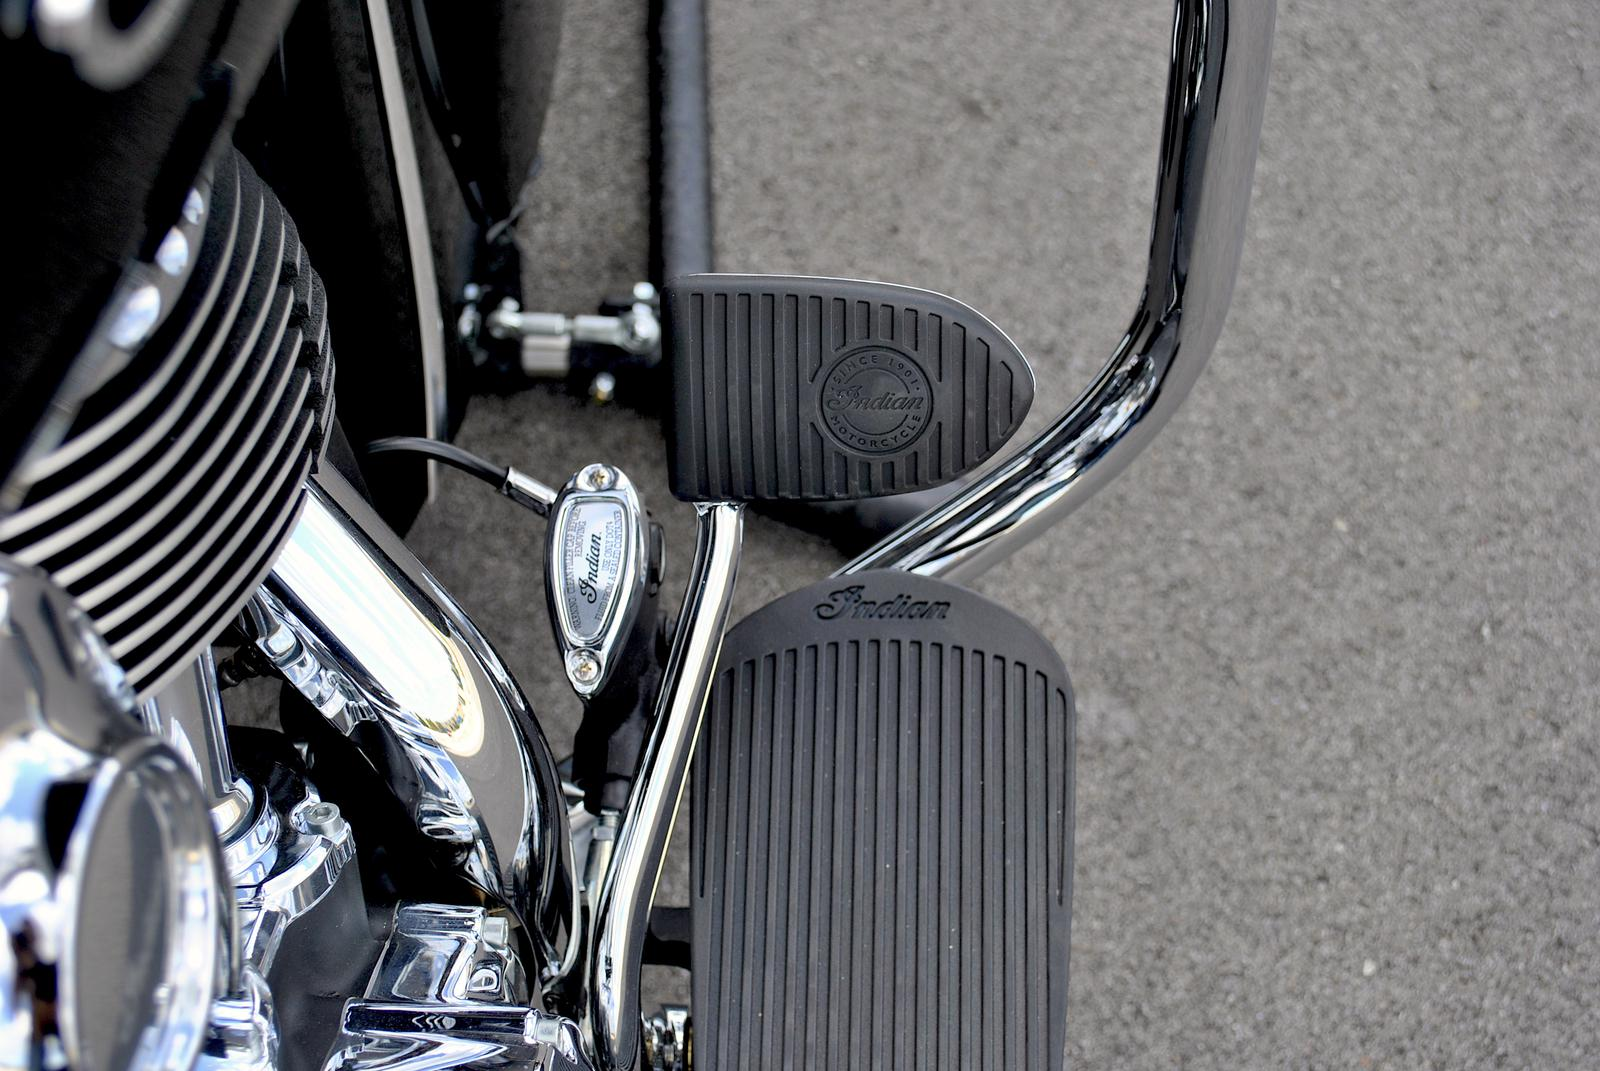 2018 Indian Motorcycle Chief Vintage For Sale In Indianapolis Wiring Driving Lights Including N18ccvaaaaa Thunderblack Ind7246 15